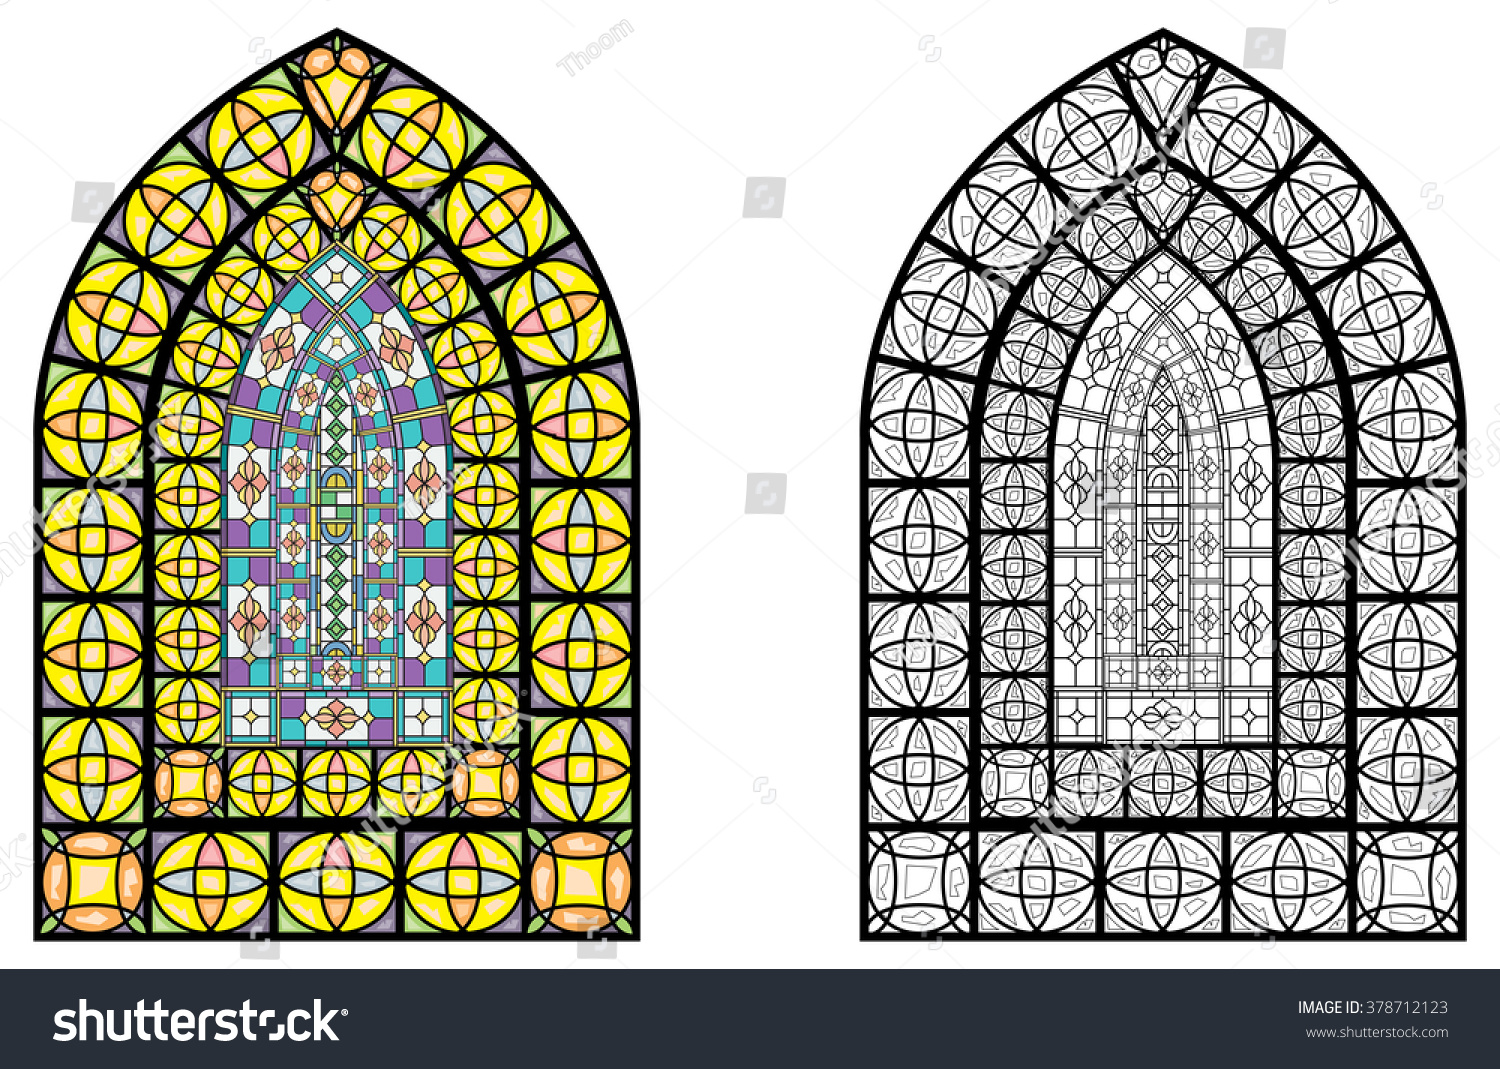 Drawing Glass Window : Church stained glass windows vector illustration stock